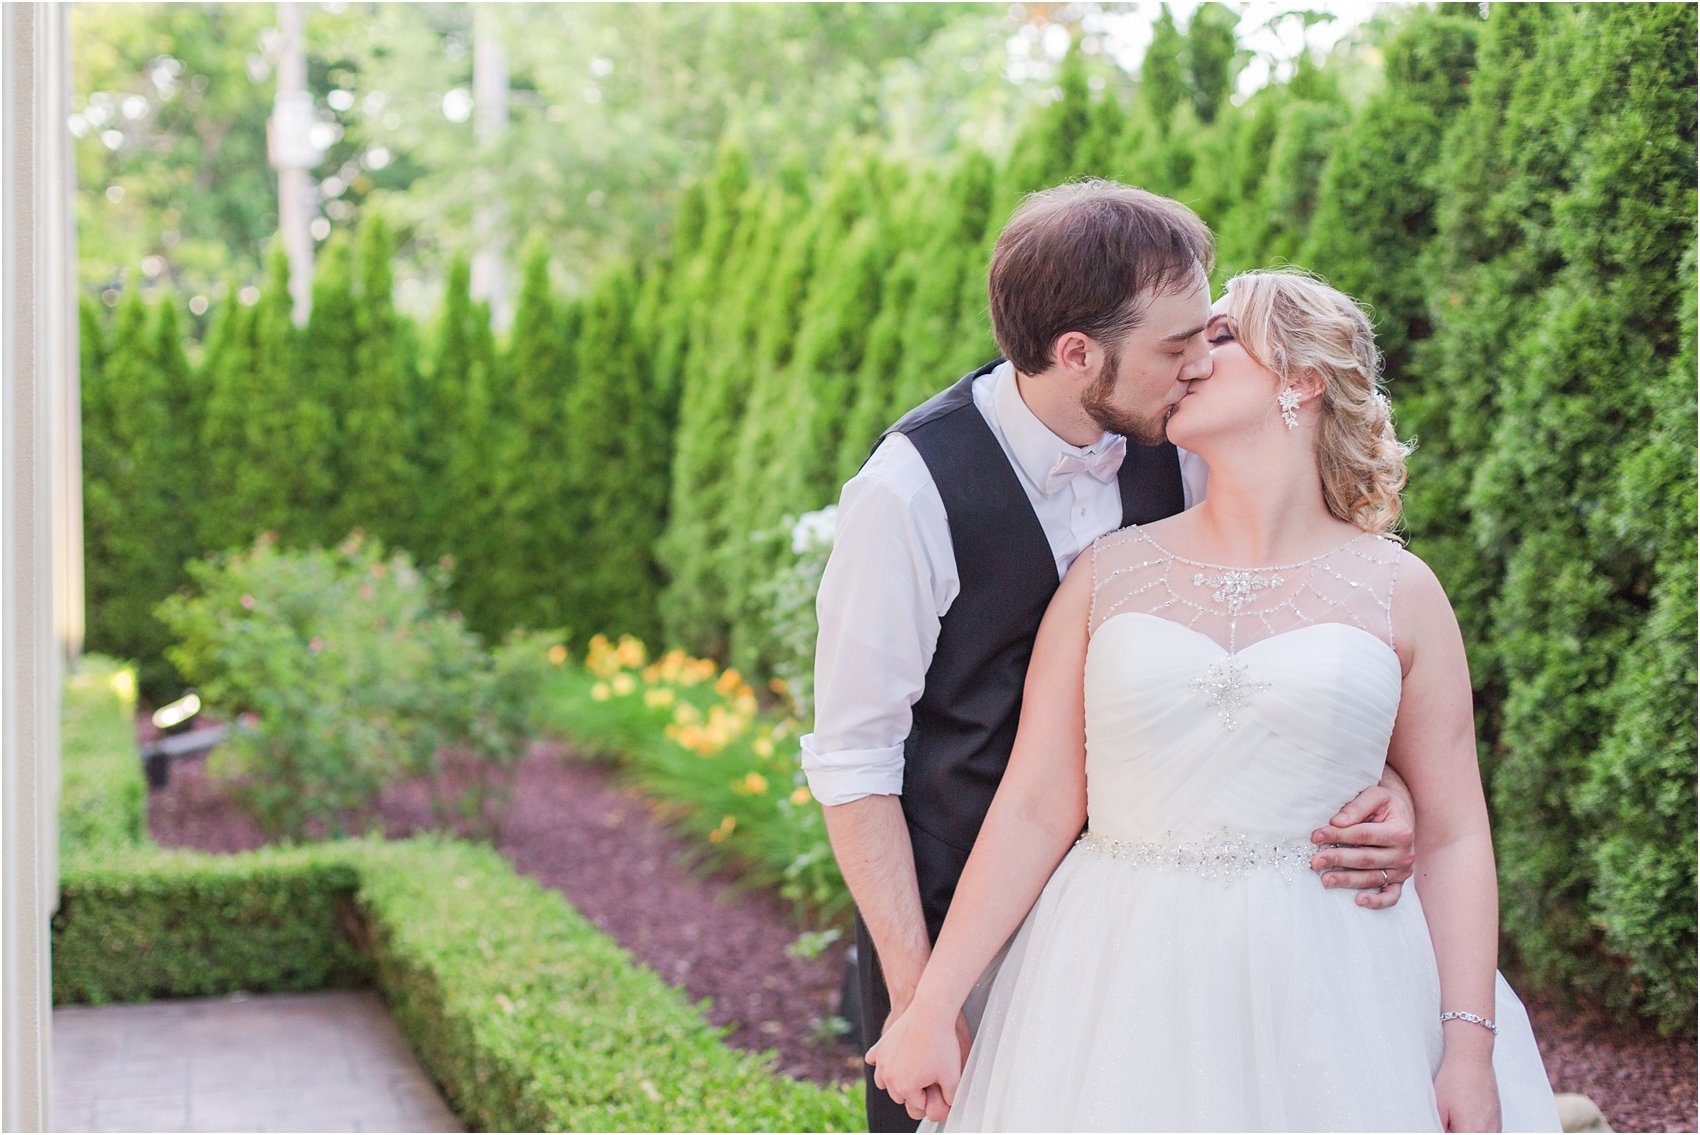 lord-of-the-rings-inspired-wedding-photos-at-crystal-gardens-in-howell-mi-by-courtney-carolyn-photography_0112.jpg